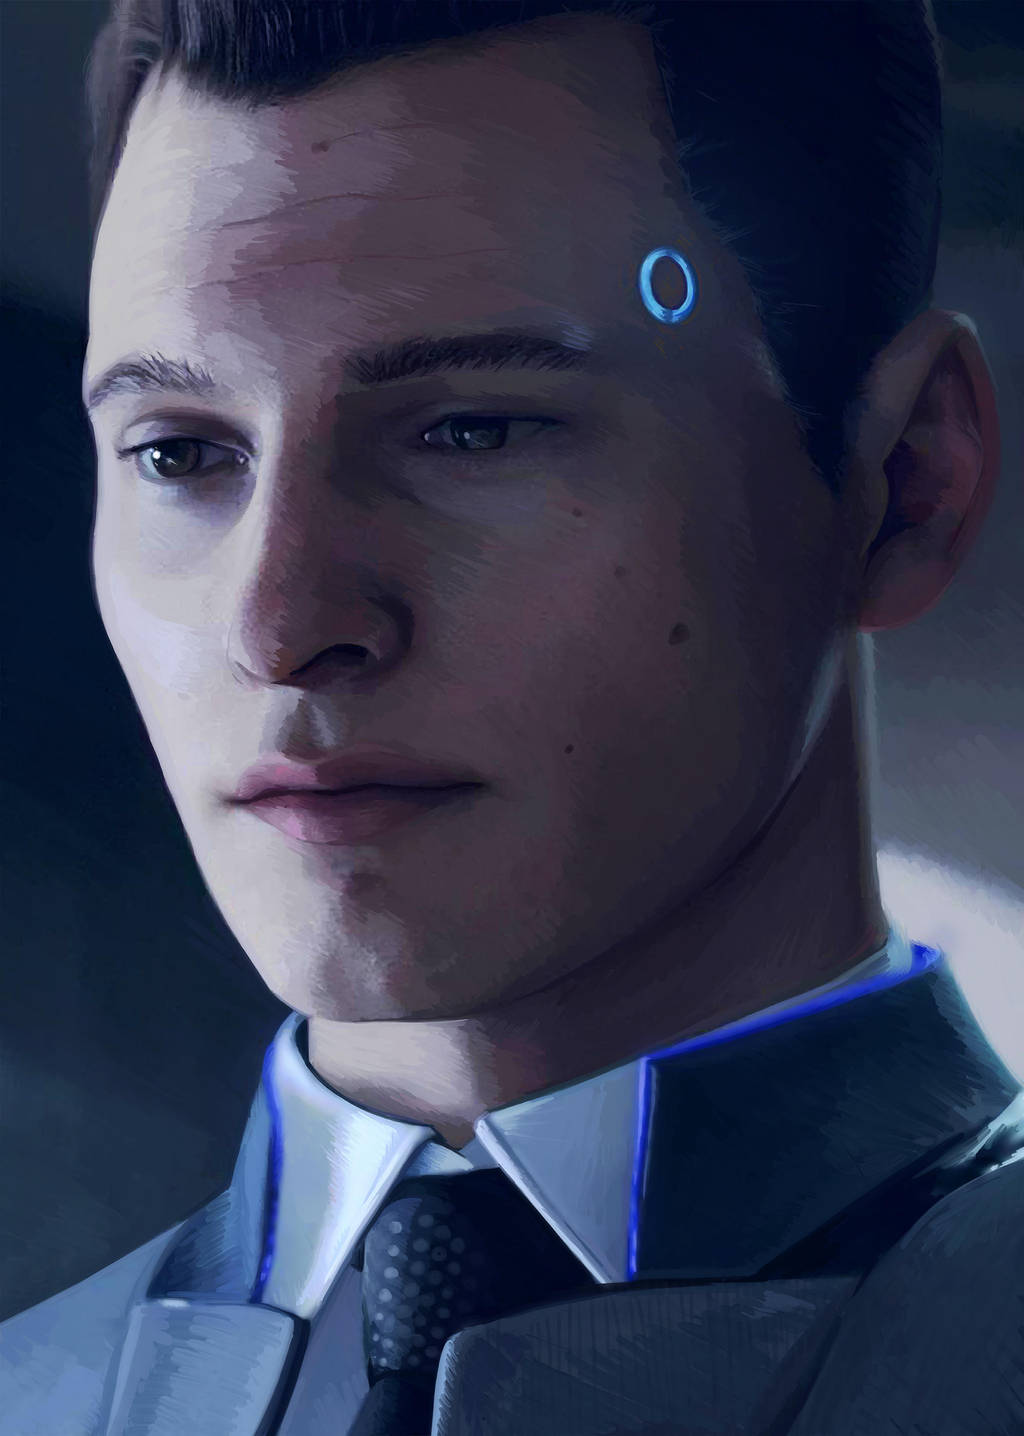 Detroit: Become Human - Connor by PeppermintSchnapps on DeviantArt